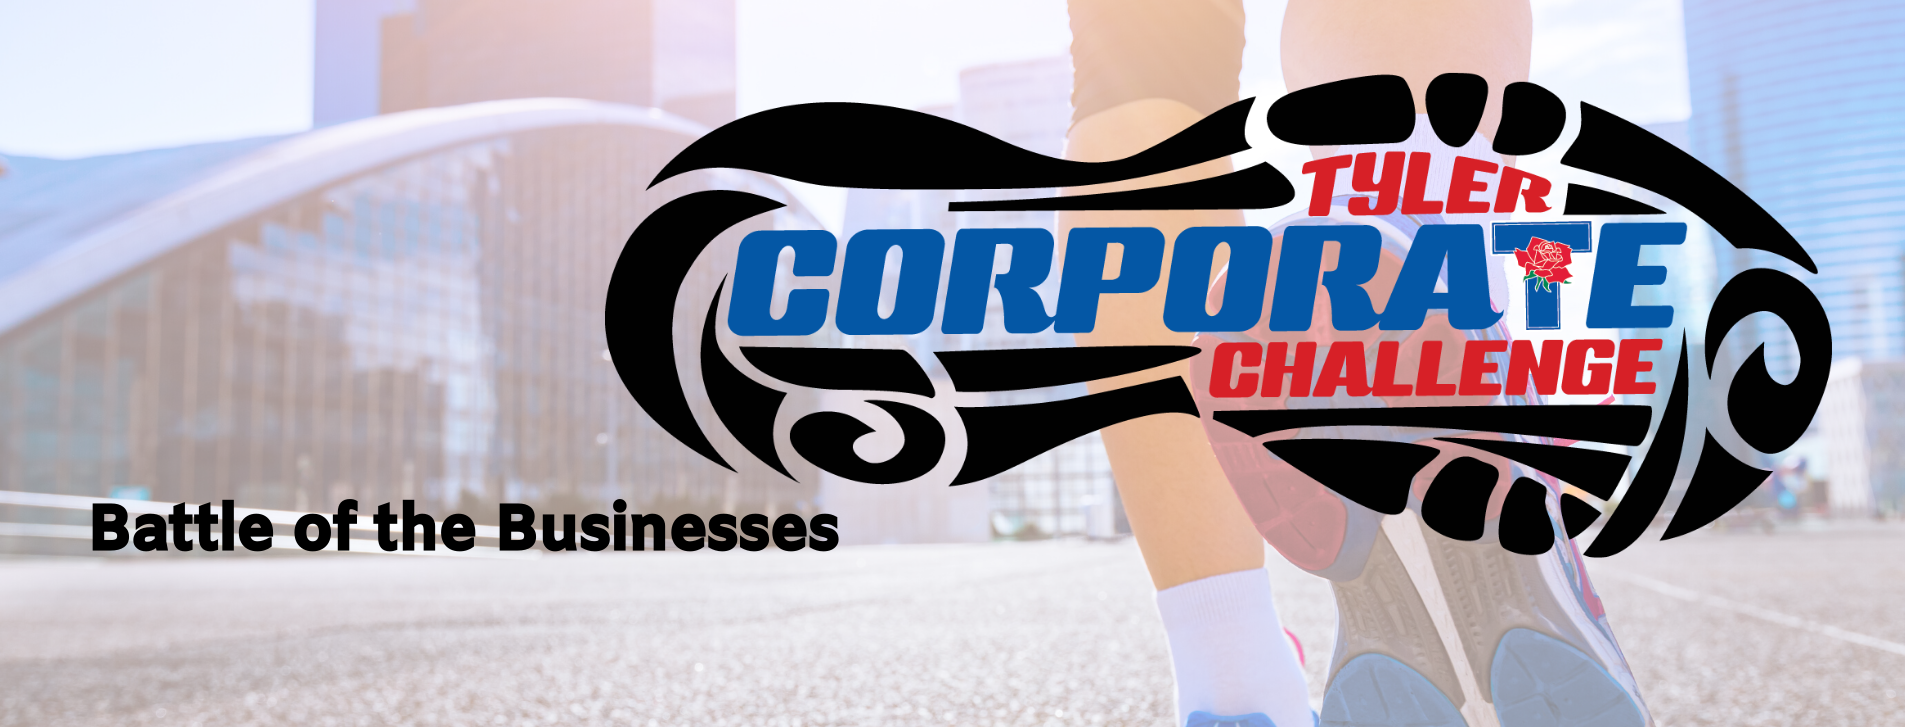 Corporate Challenge 2020 battle of the Businesses